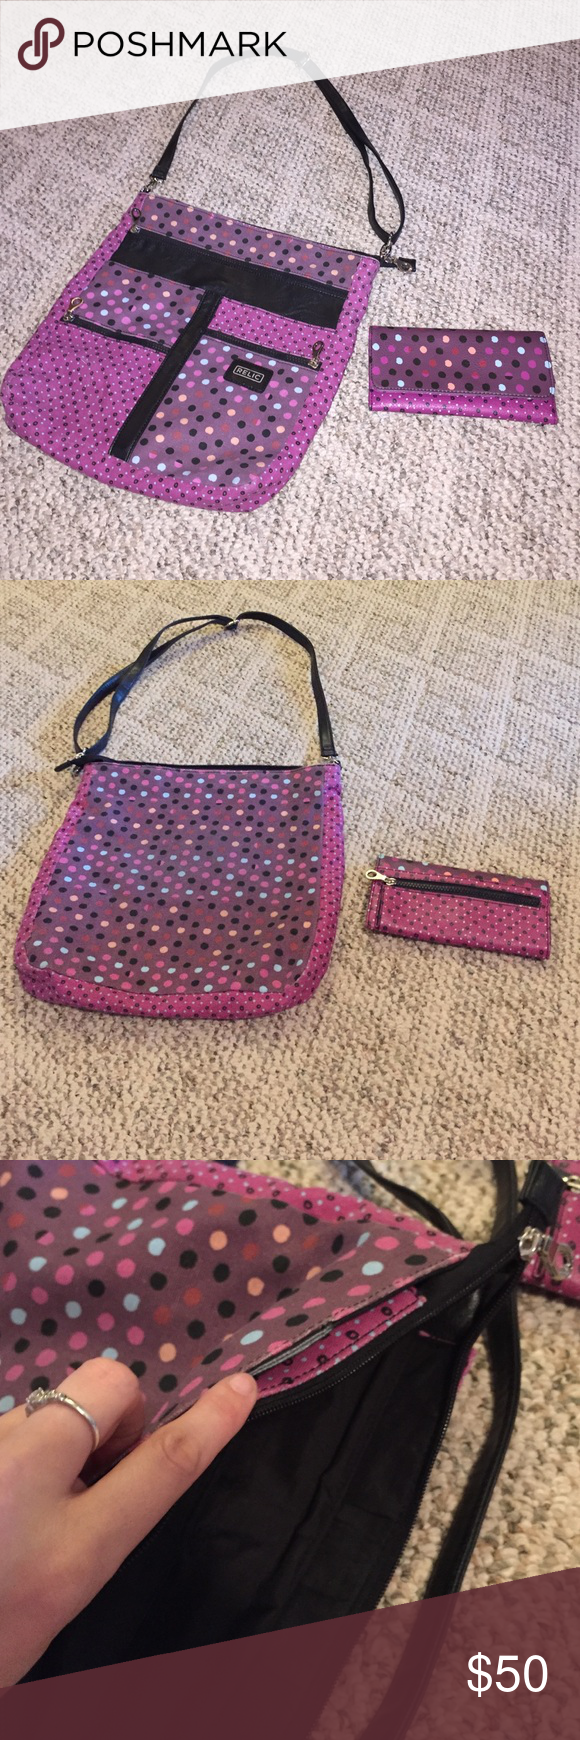 Relic Cross body Purse & Wallet Purple polka dotted purse and wallet by Relic! I cut the handles off but not noticeable. Has adjust shoulder strap. Wallet is like new. Has plenty of slots for cards and money and a zip pocket on back for change. Purse and wallet used twice!! EUC Relic Bags Crossbody Bags